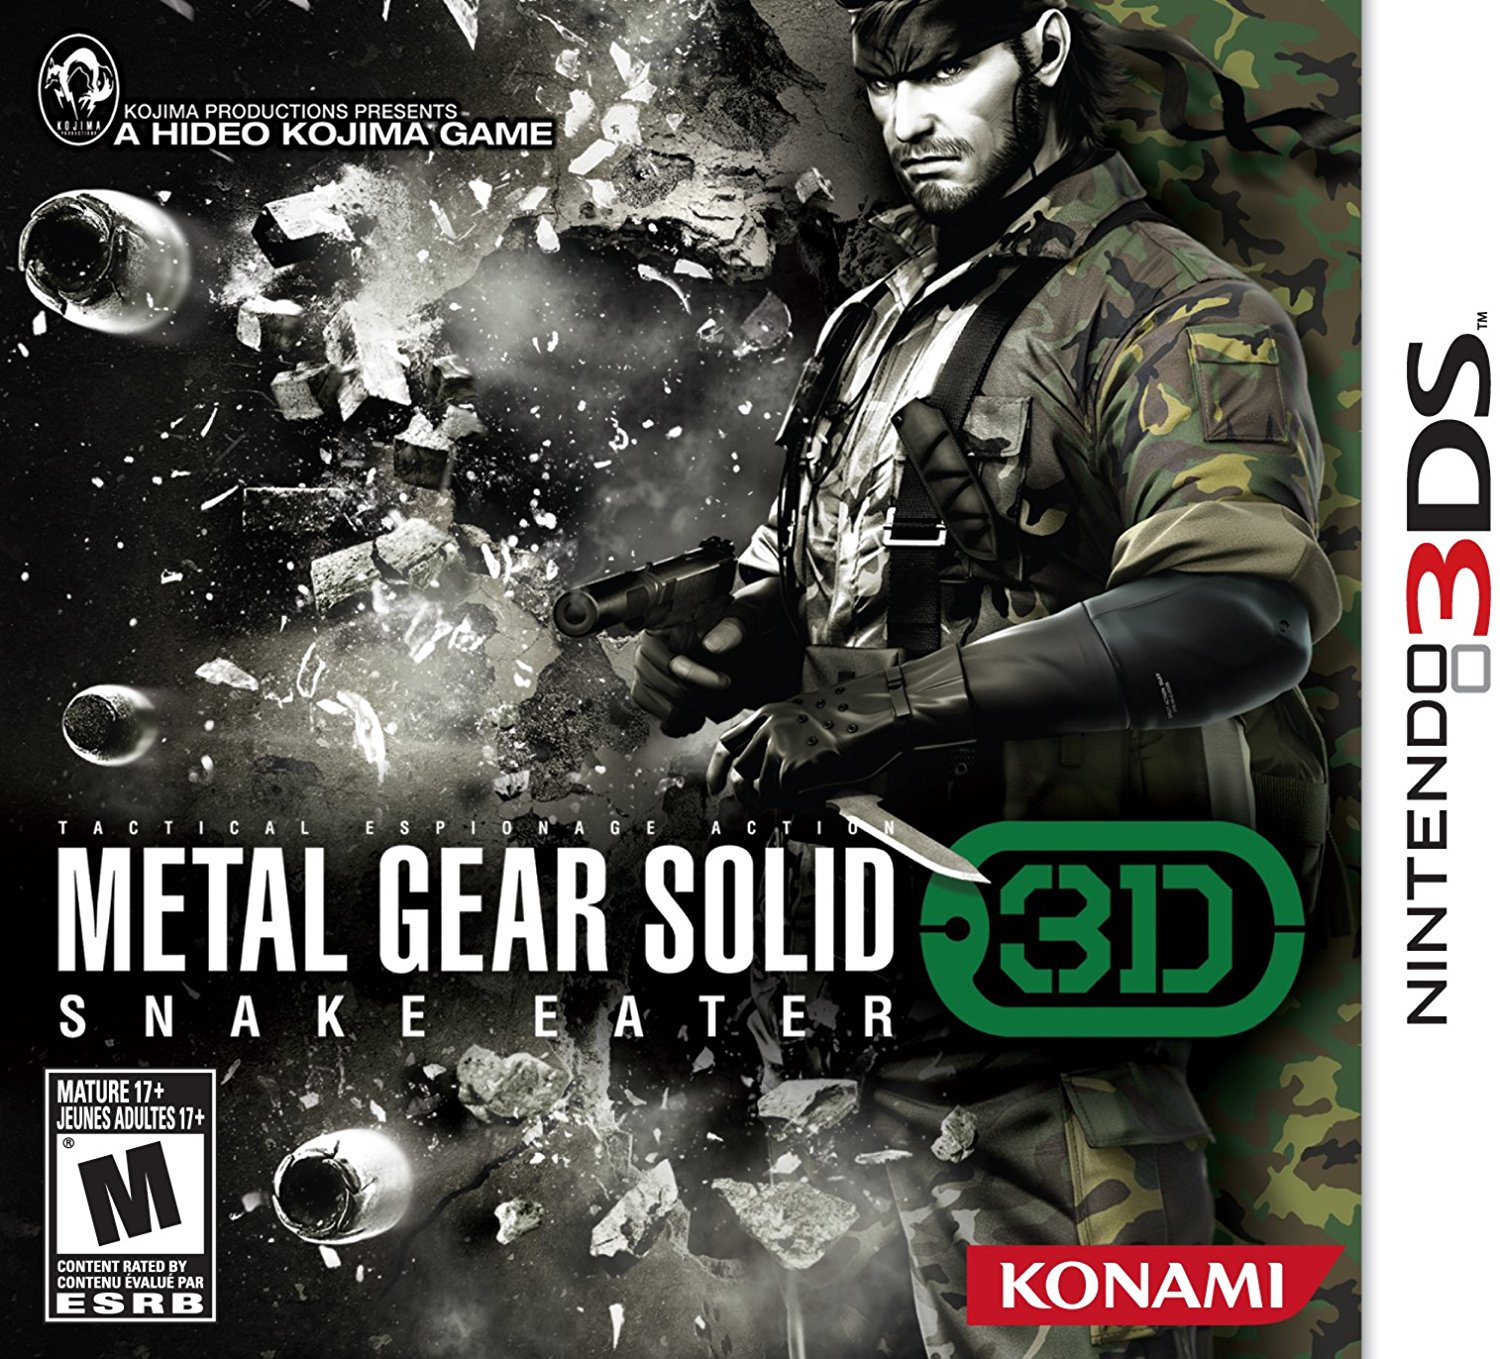 Download 3DS CIAs: Metal Gear Solid: Snake Eater 3D